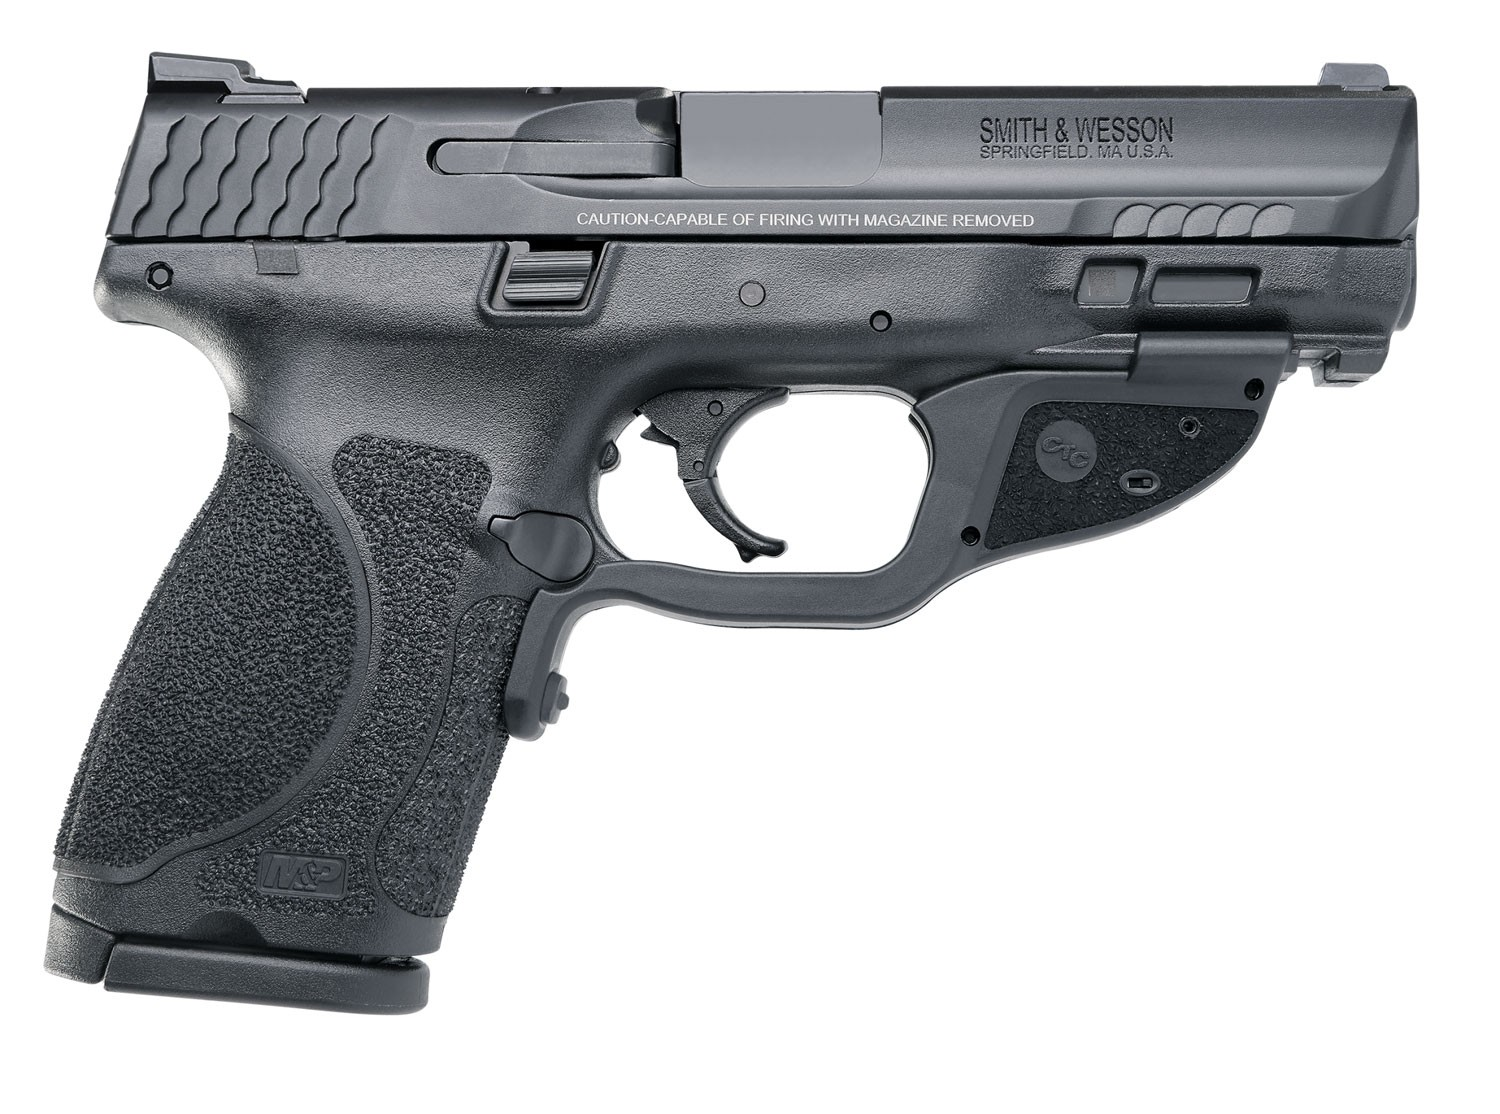 Smith & Wesson 12413 M&P 9 M2.0 Compact Crimson Trace Laserguard 9mm Luger Double 4 15+1 NMS Black Interchangeable Backstrap Grip Black Armornite Stainless Steel in.